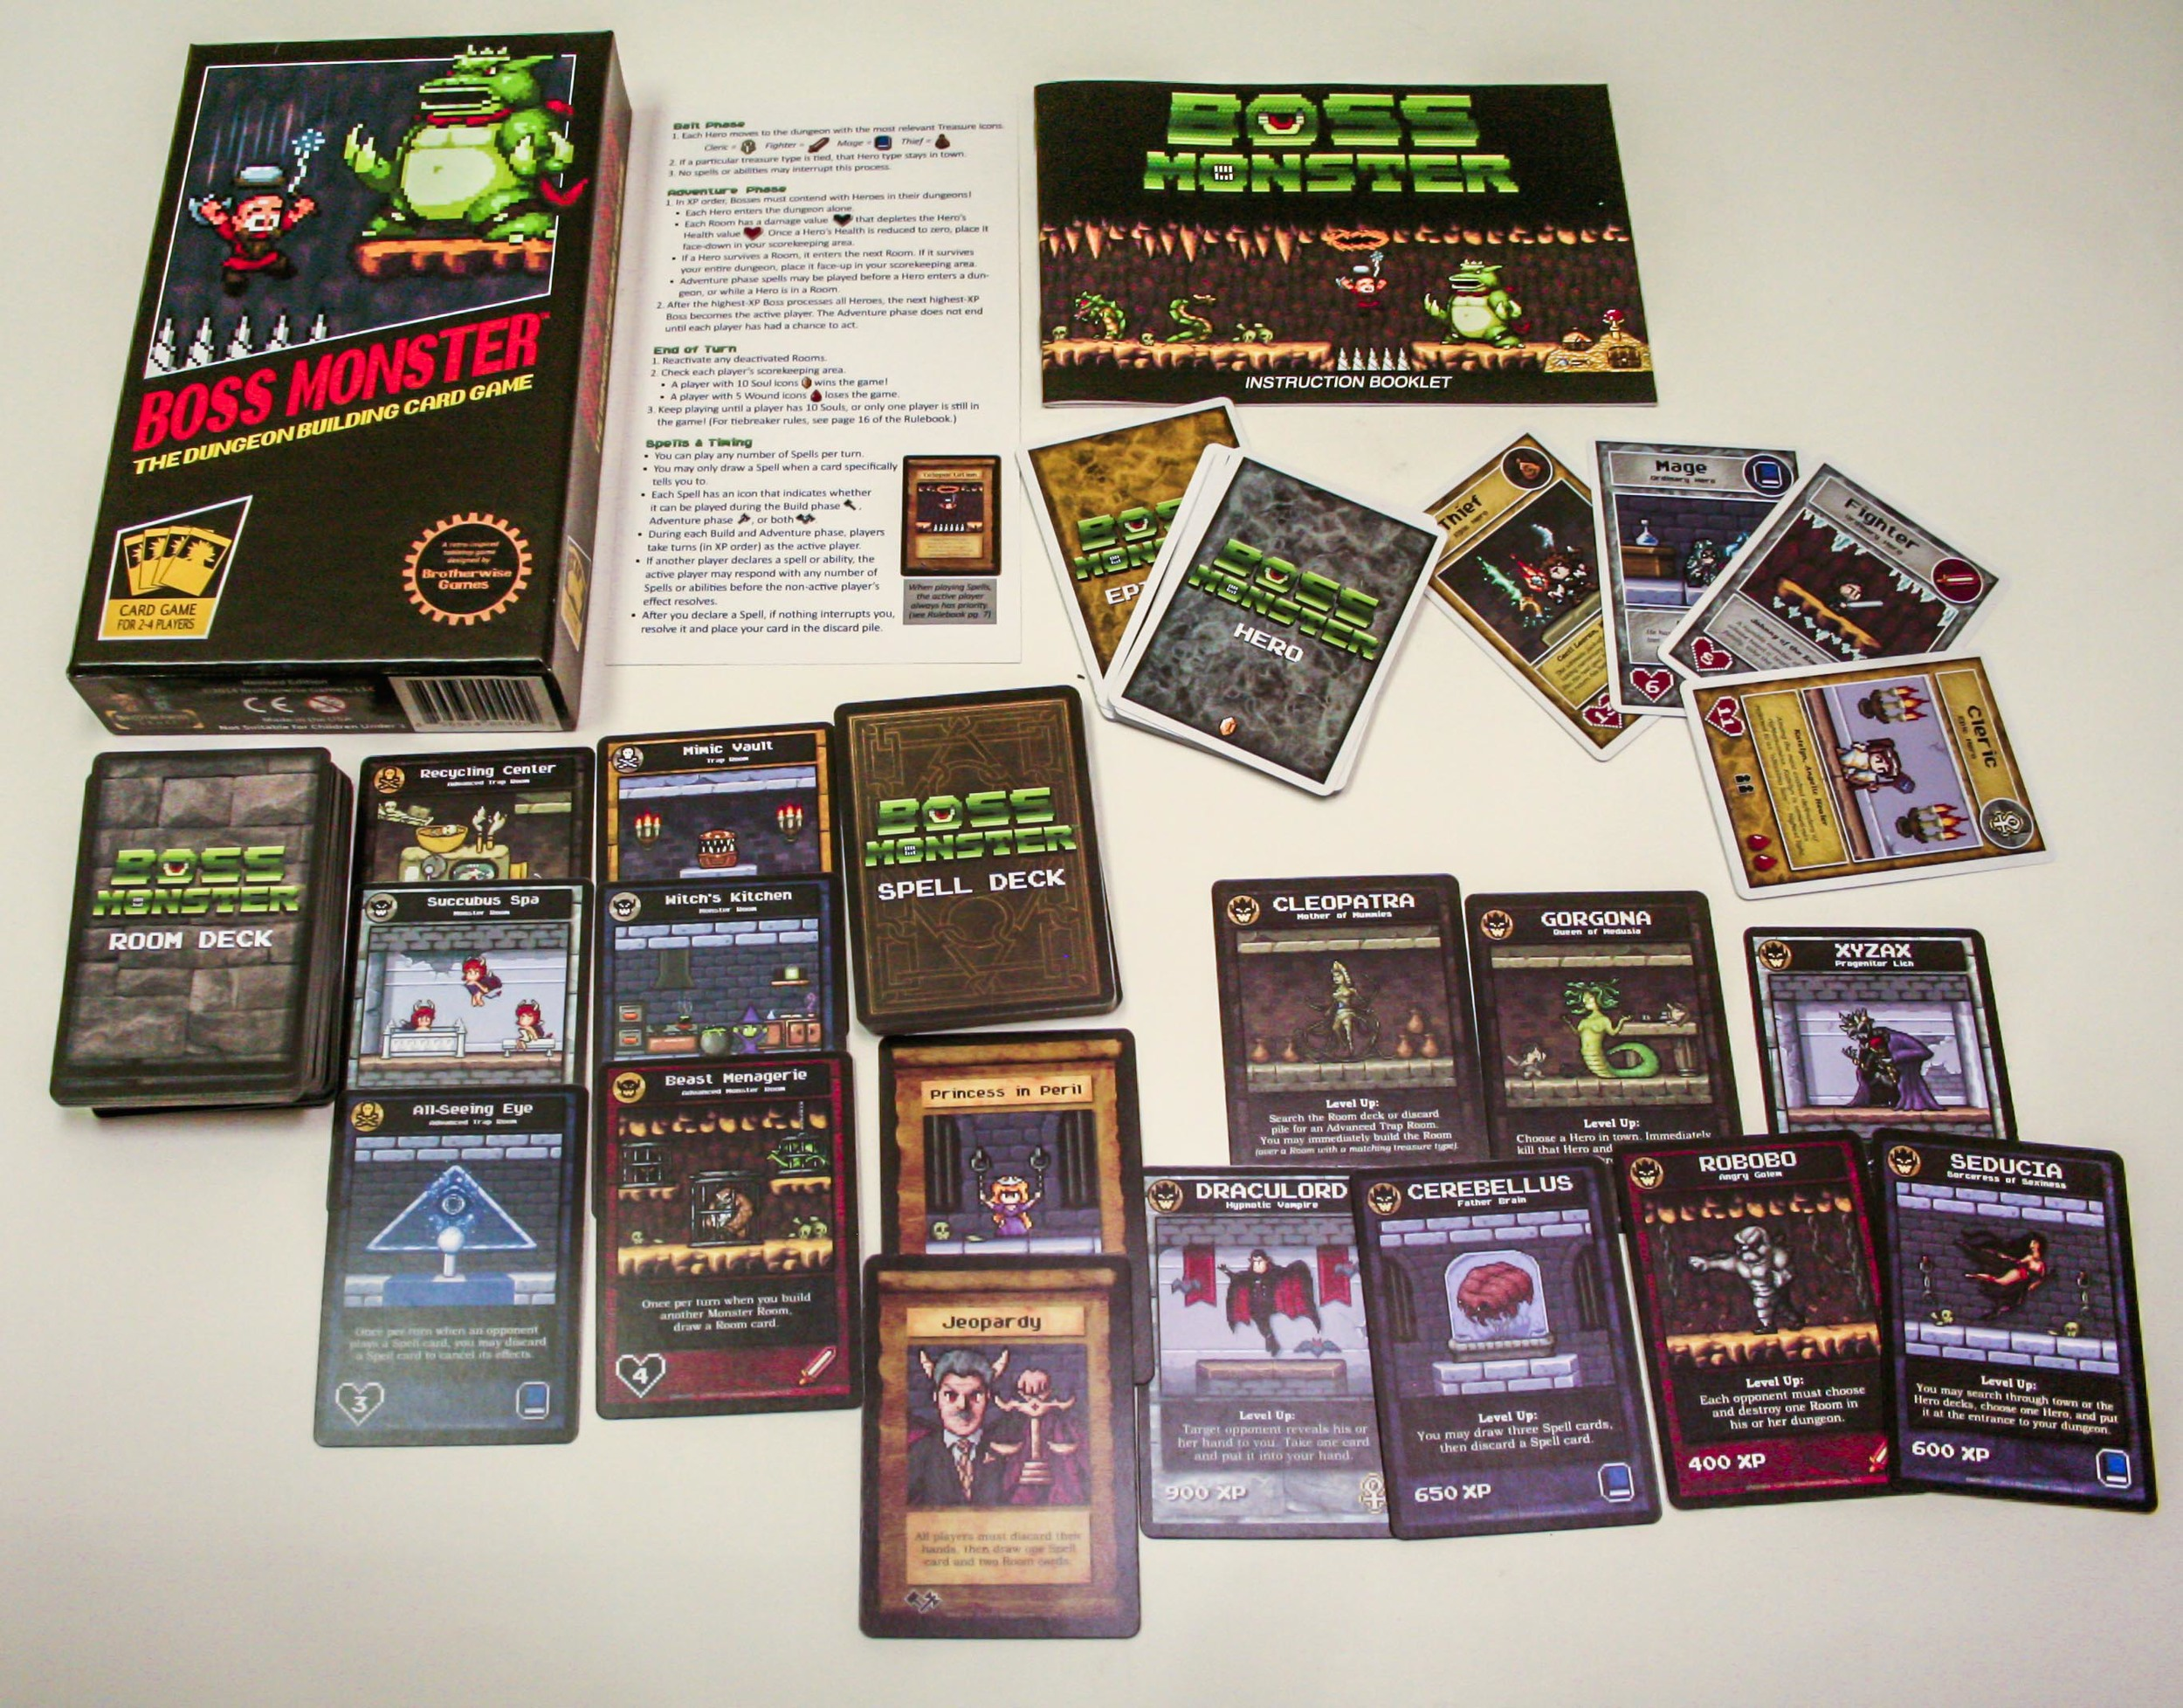 BOSS MONSTER IS A DECK BUILDING GAME, WHERE YOU PLAY THE MONSTER AND BUILD YOUR DUNGEON.